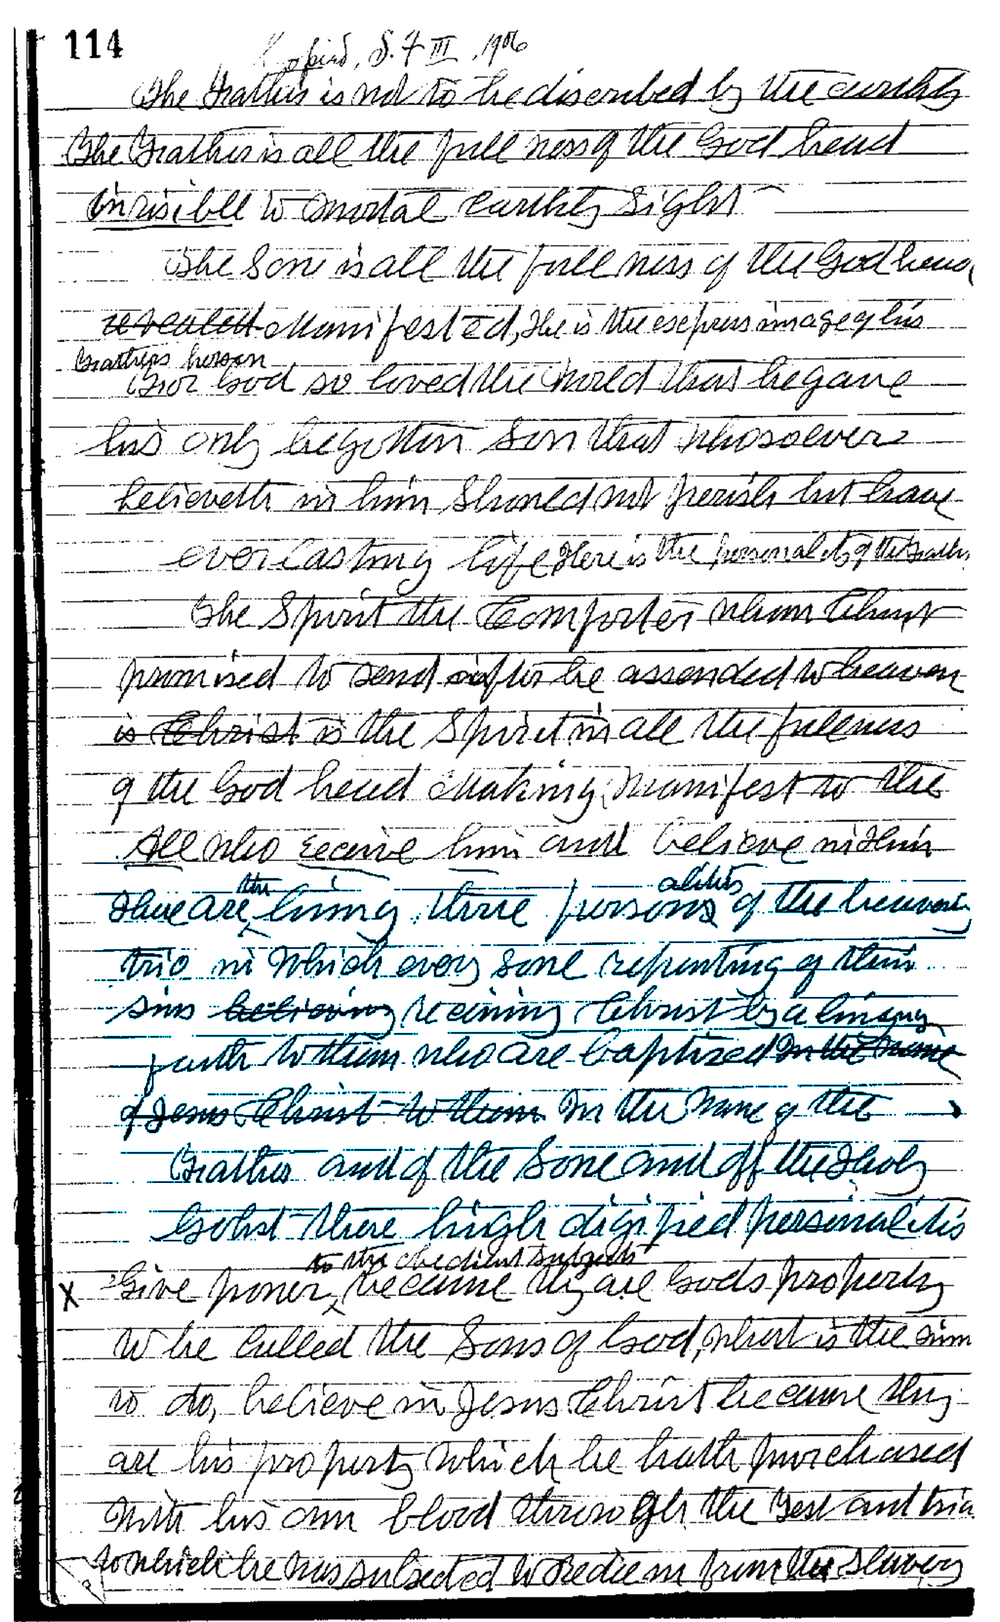 Photocopy of Original Ellen G. White's Manuscript in her own handwriting. The blue highlight was added by me for emphasis.